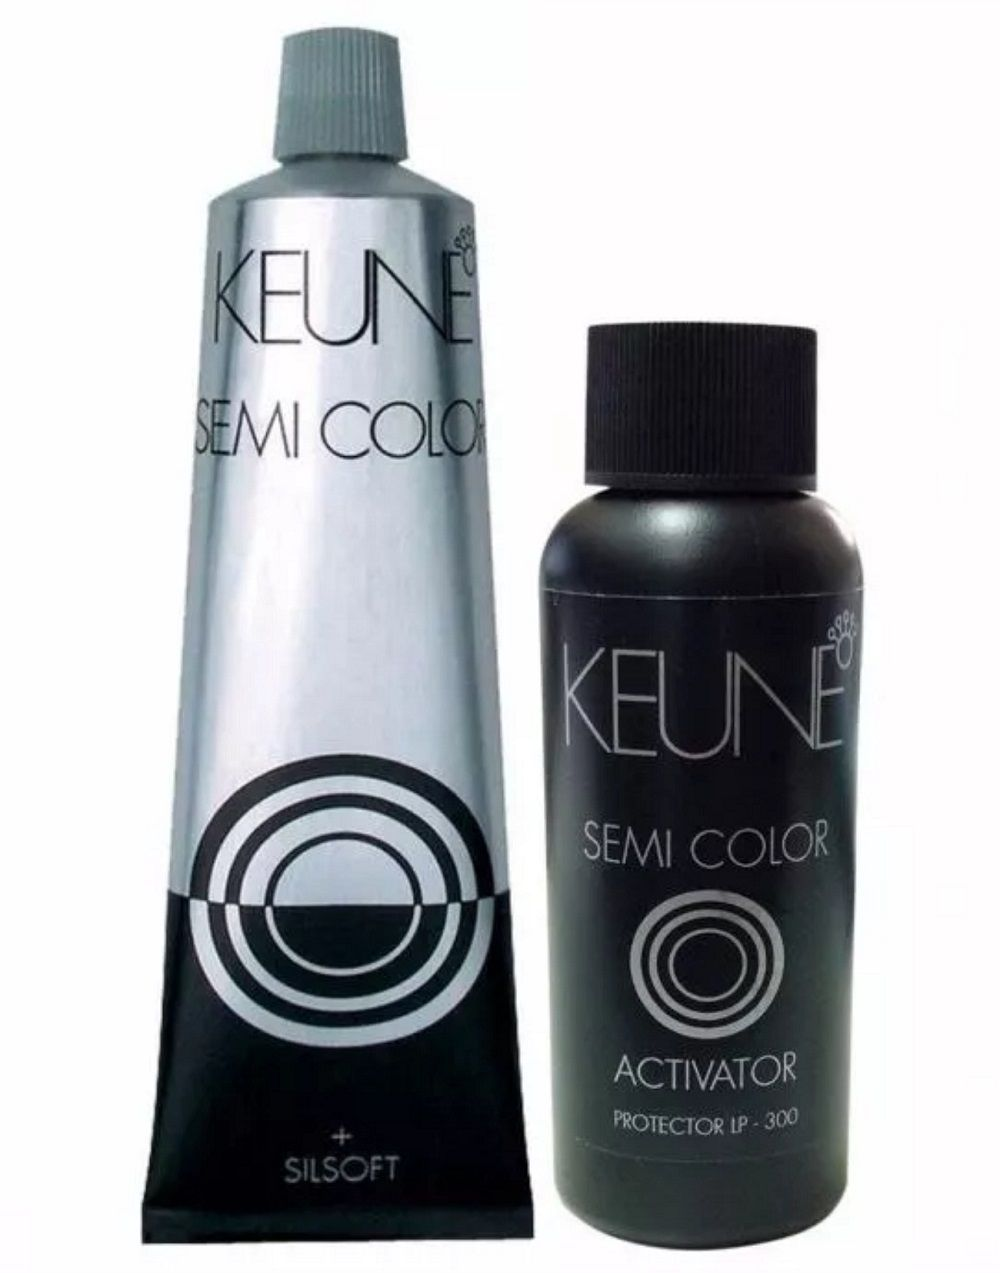 Kit Keune Semi Color 60ml - Cor 10.2 - Louro Extra Claro Pérola + Ativador 60ml